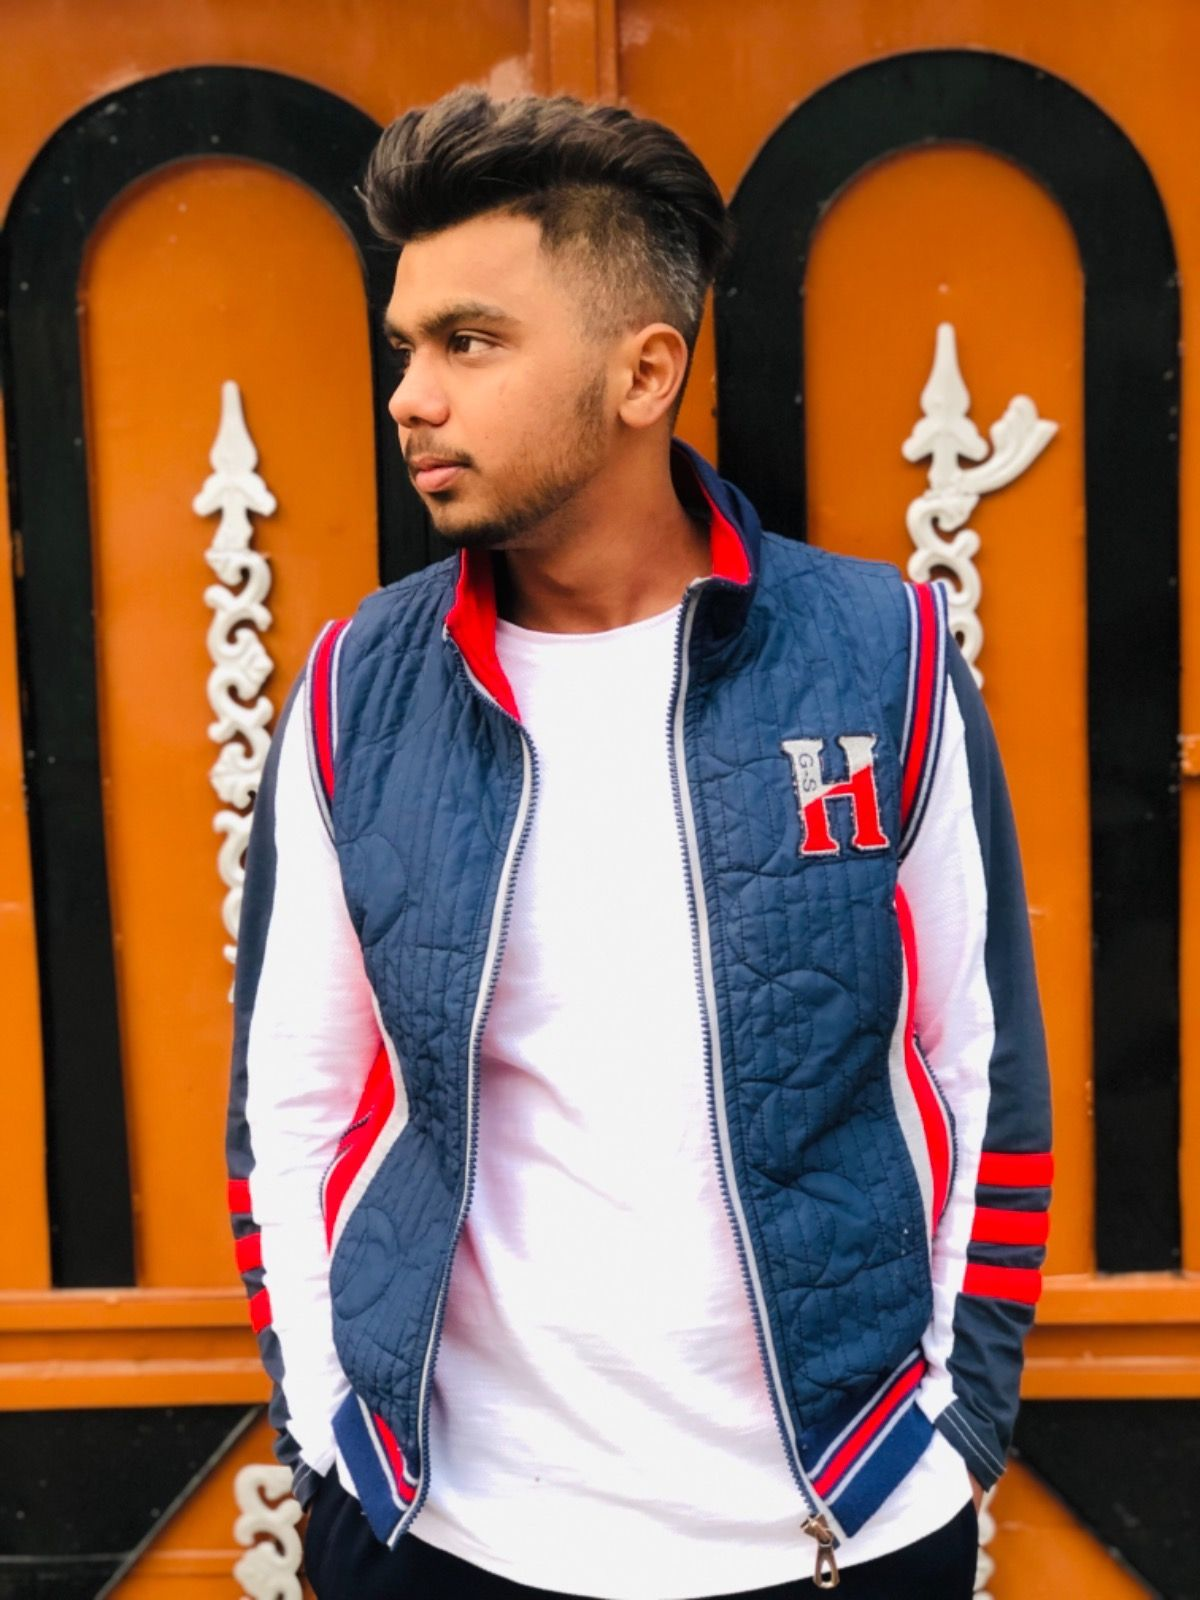 R nait new song defaulter djjohal download | Defaulter R